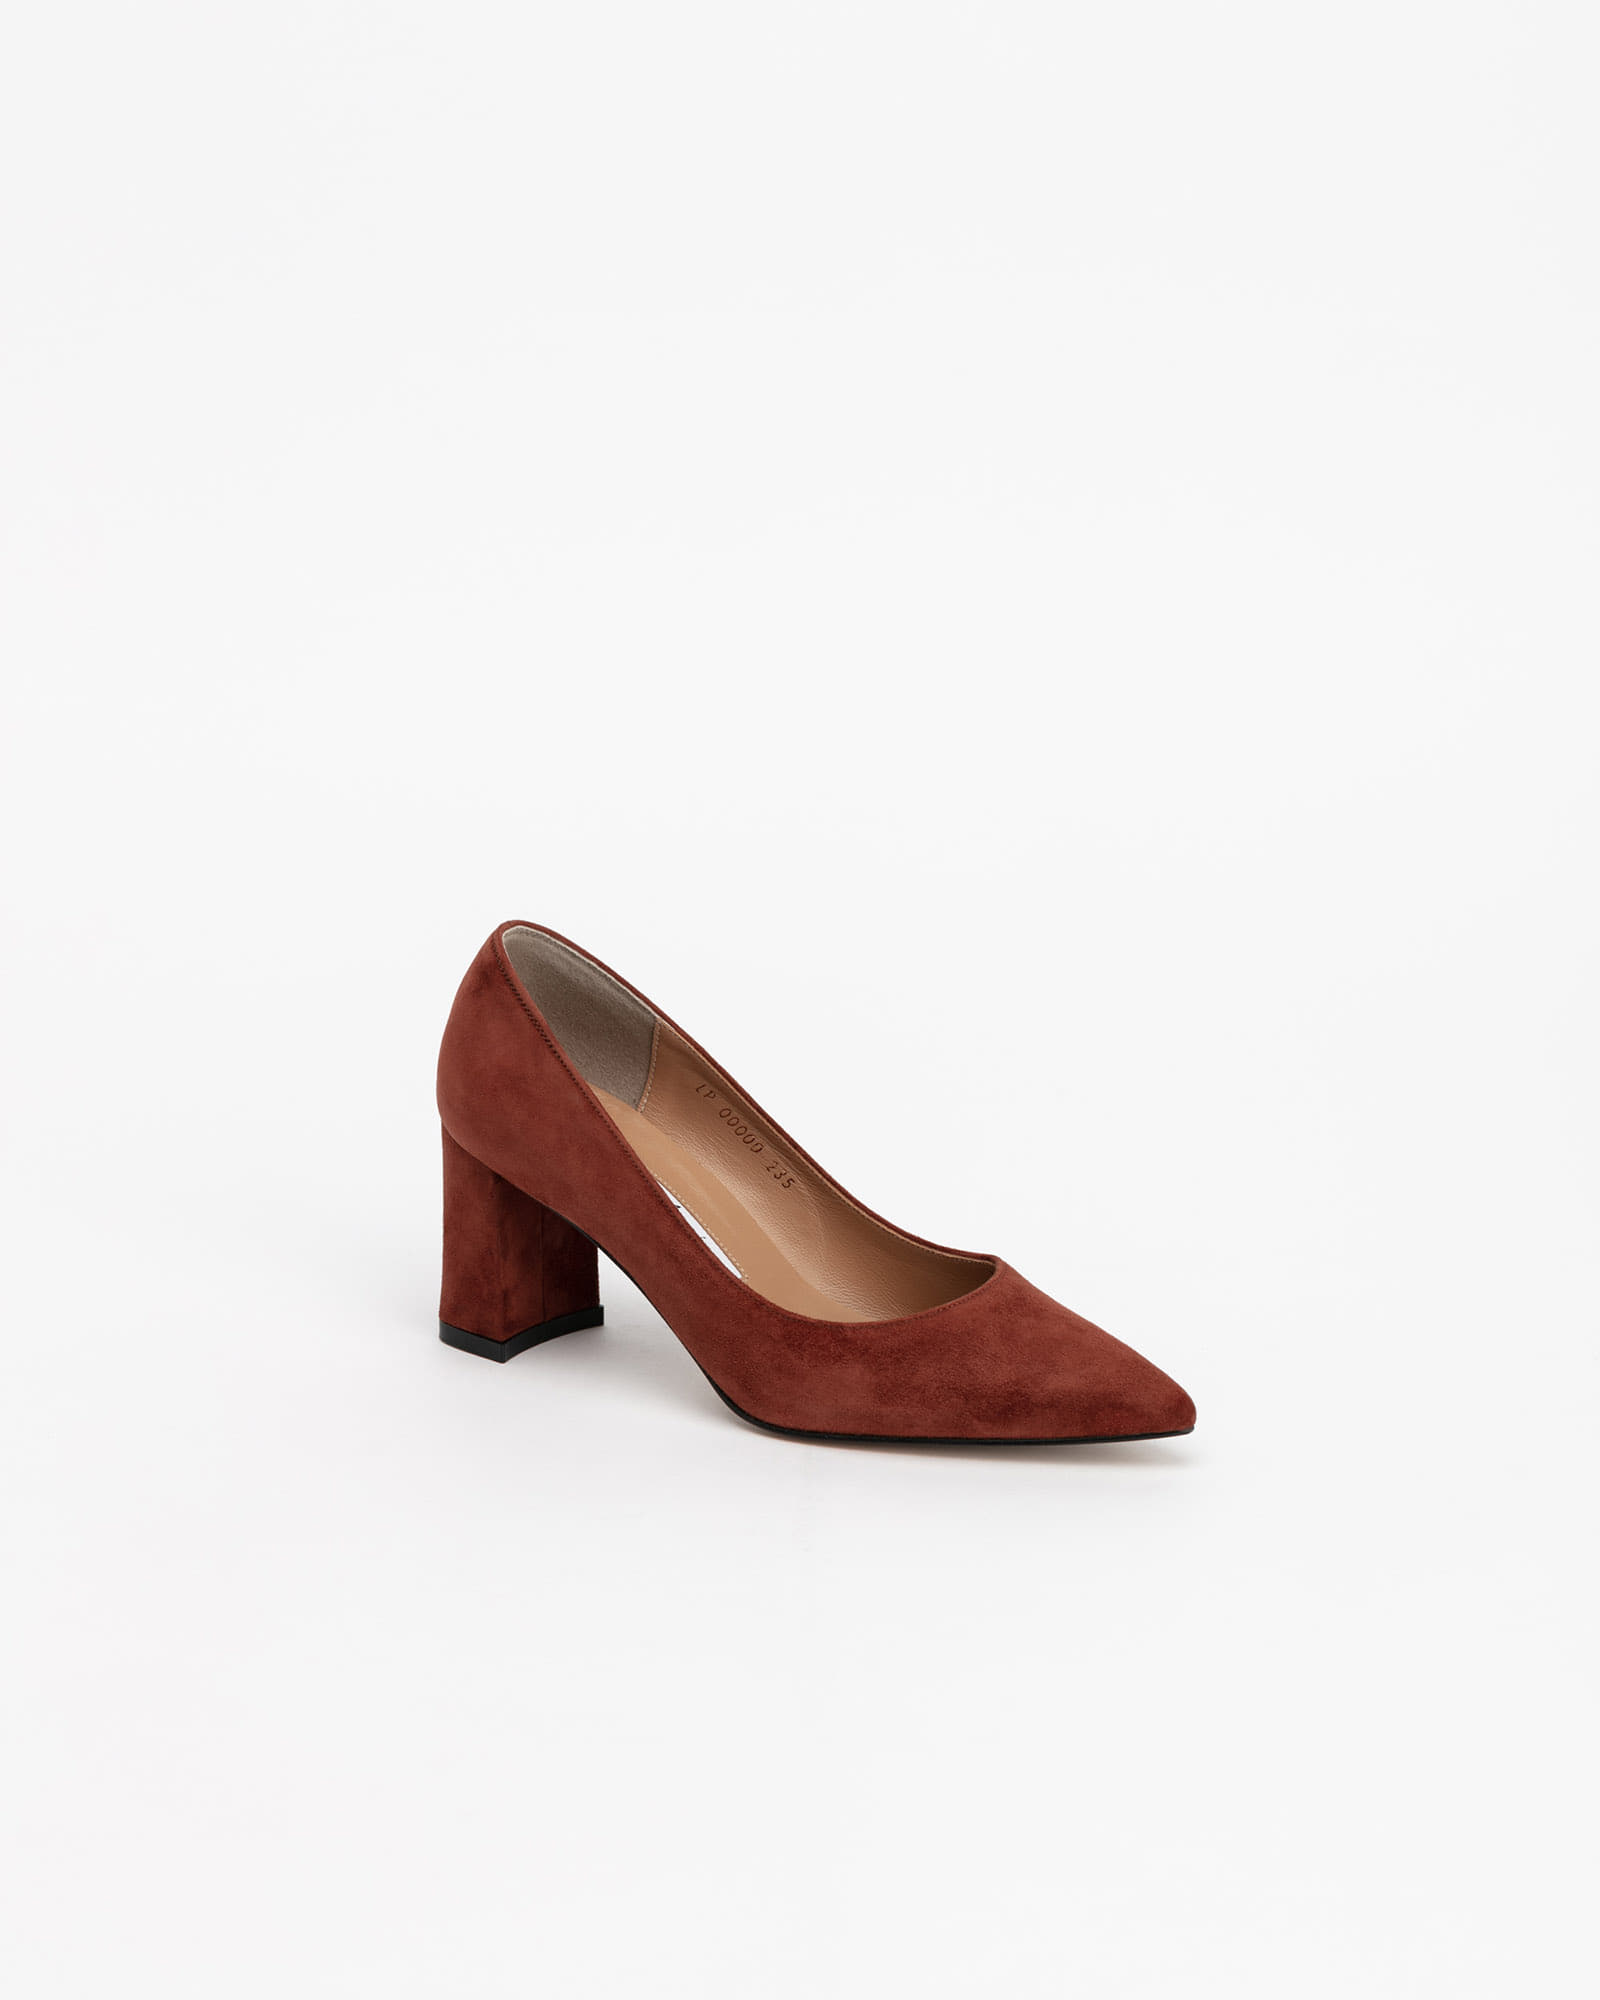 Naff Pumps in Chestnut Brown Suede